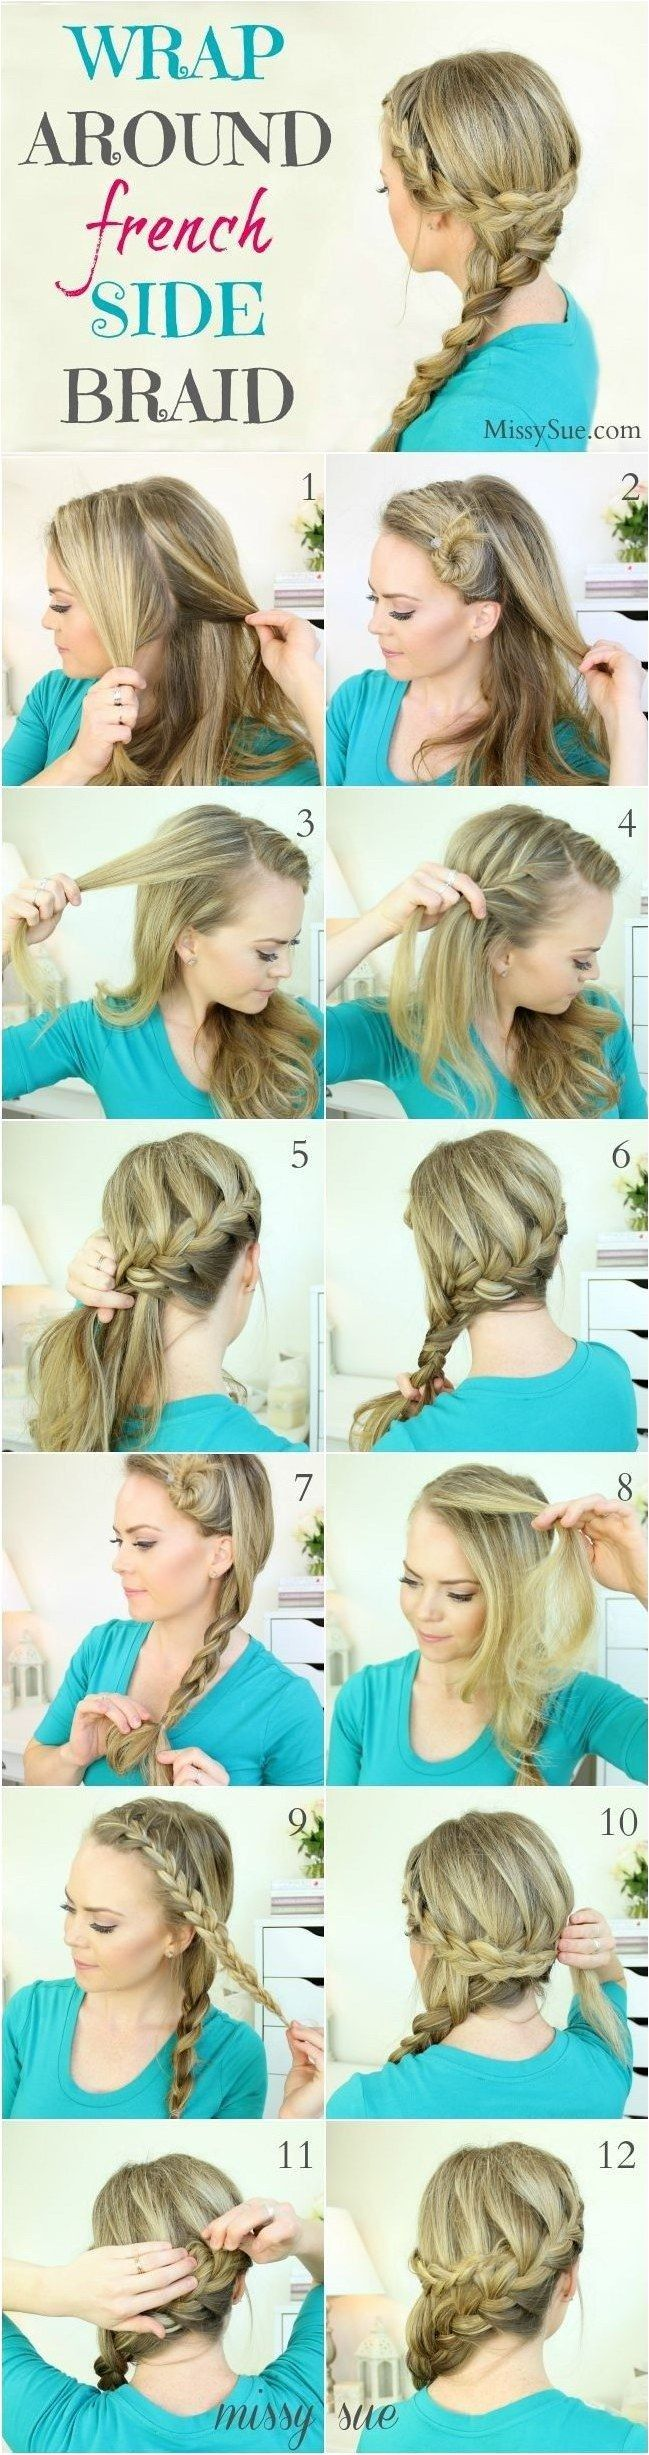 Wrap around french side braid hairstyle tutorial hairbraids